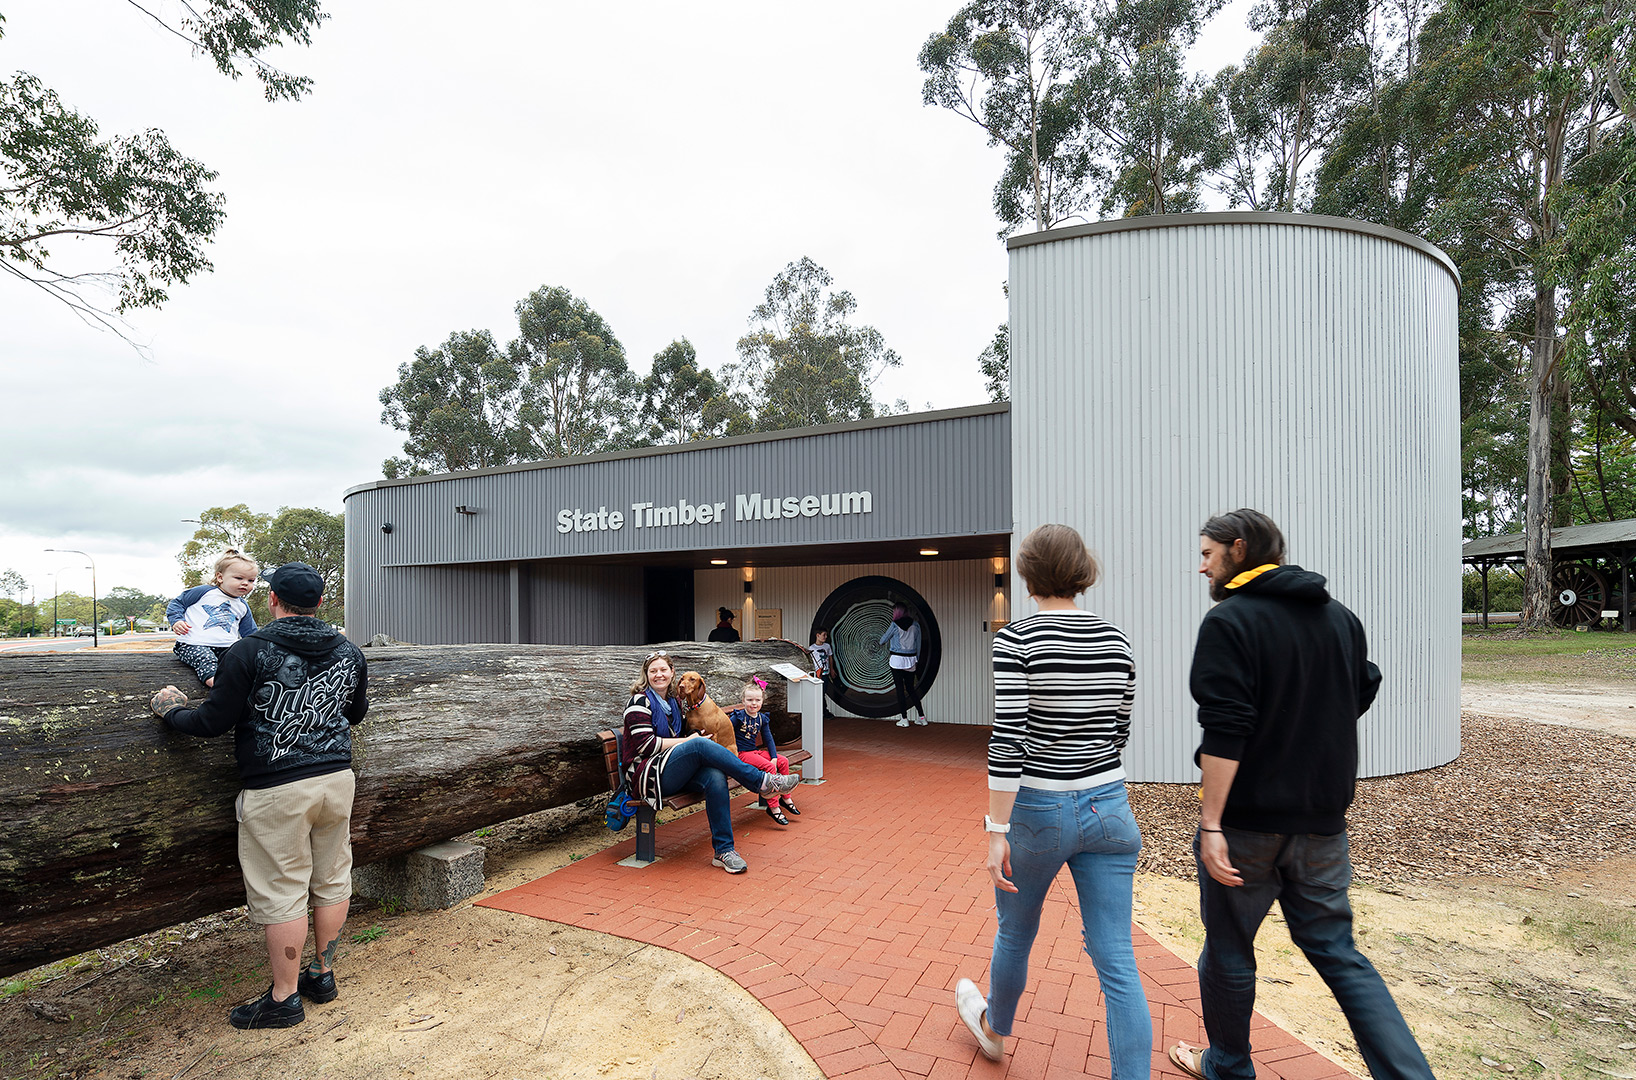 people entering the timber museum